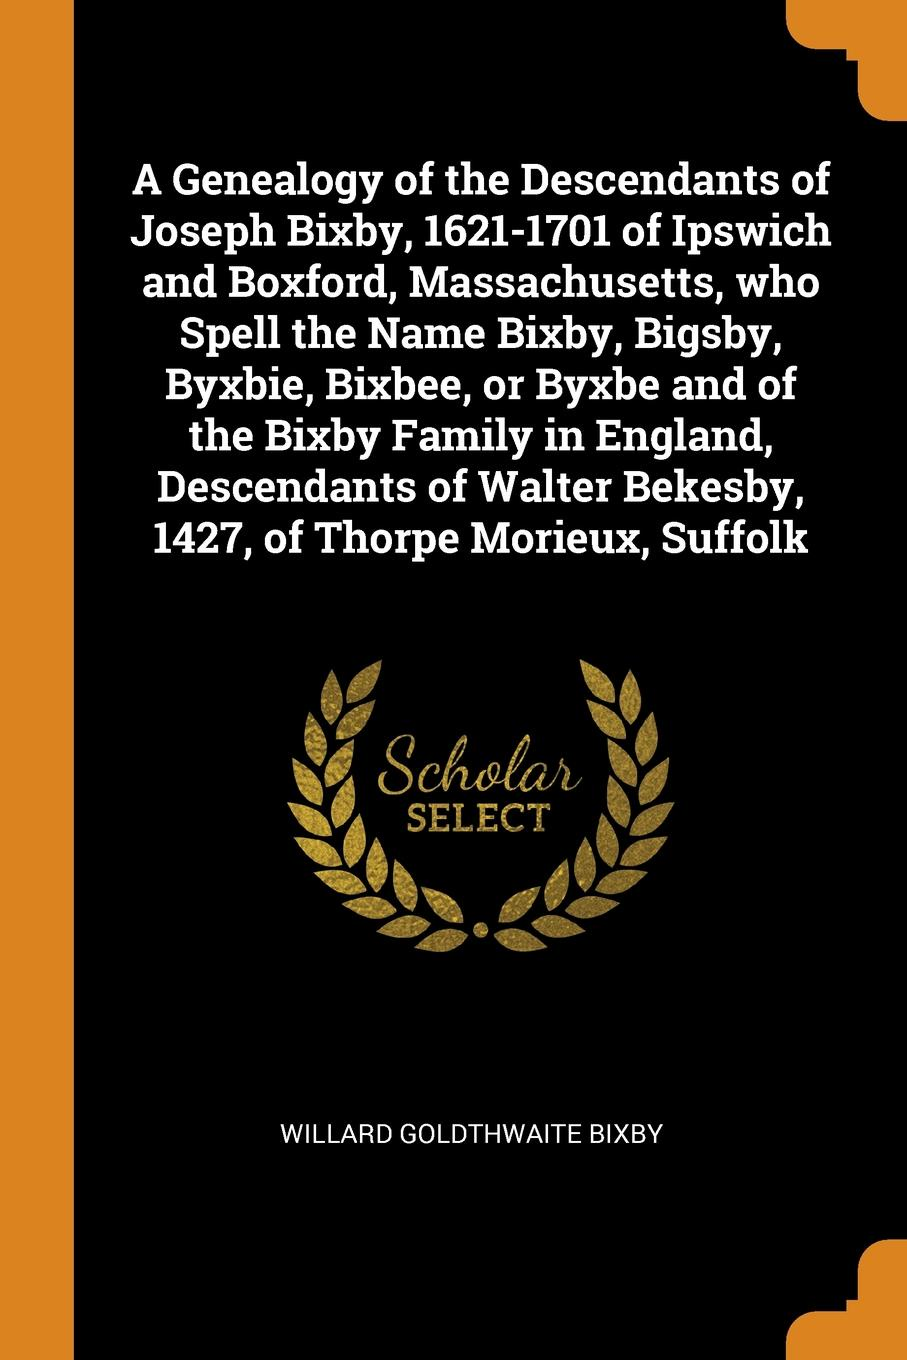 Willard Goldthwaite Bixby A Genealogy of the Descendants of Joseph Bixby, 1621-1701 of Ipswich and Boxford, Massachusetts, who Spell the Name Bixby, Bigsby, Byxbie, Bixbee, or Byxbe and of the Bixby Family in England, Descendants of Walter Bekesby, 1427, of Thorpe Morieux,... burton wb bixby down